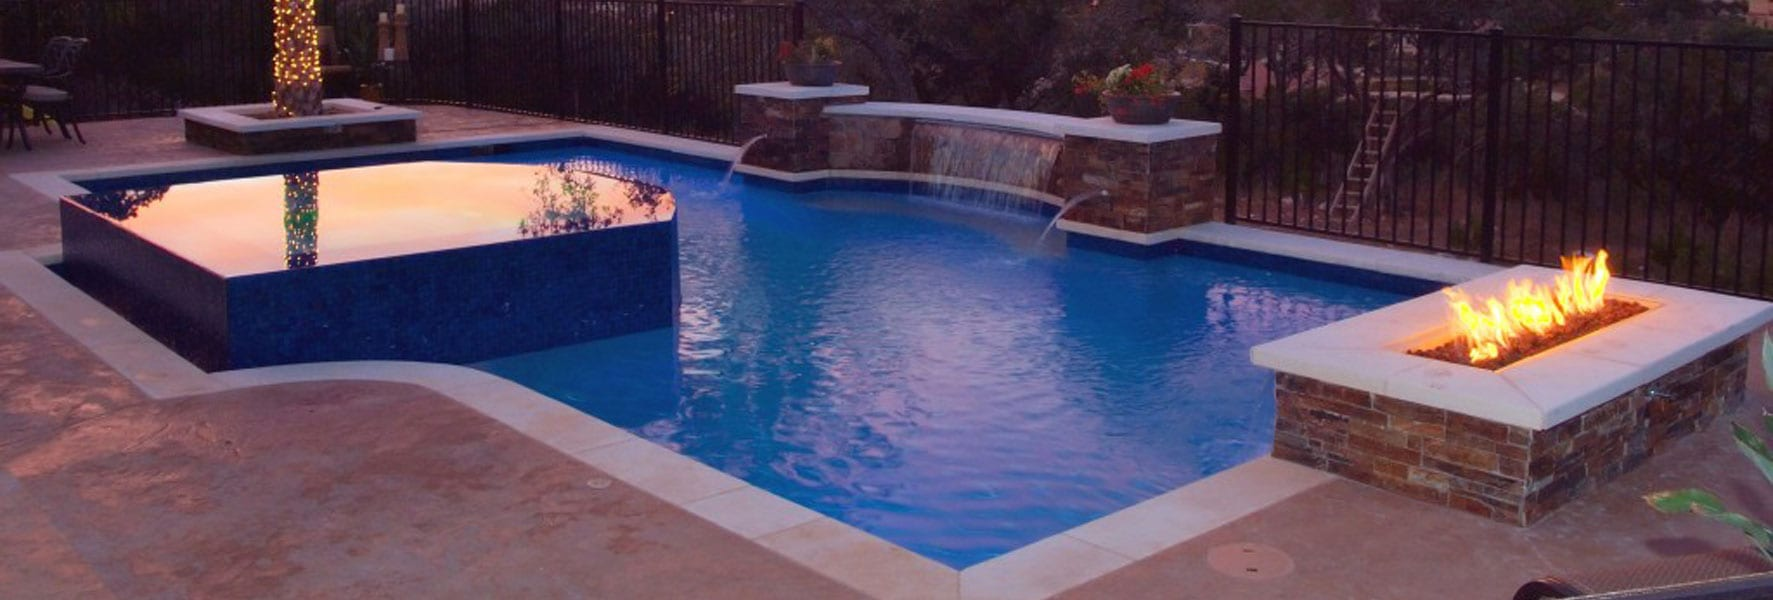 Challenger Pools Specials Best Pool Renovation Company